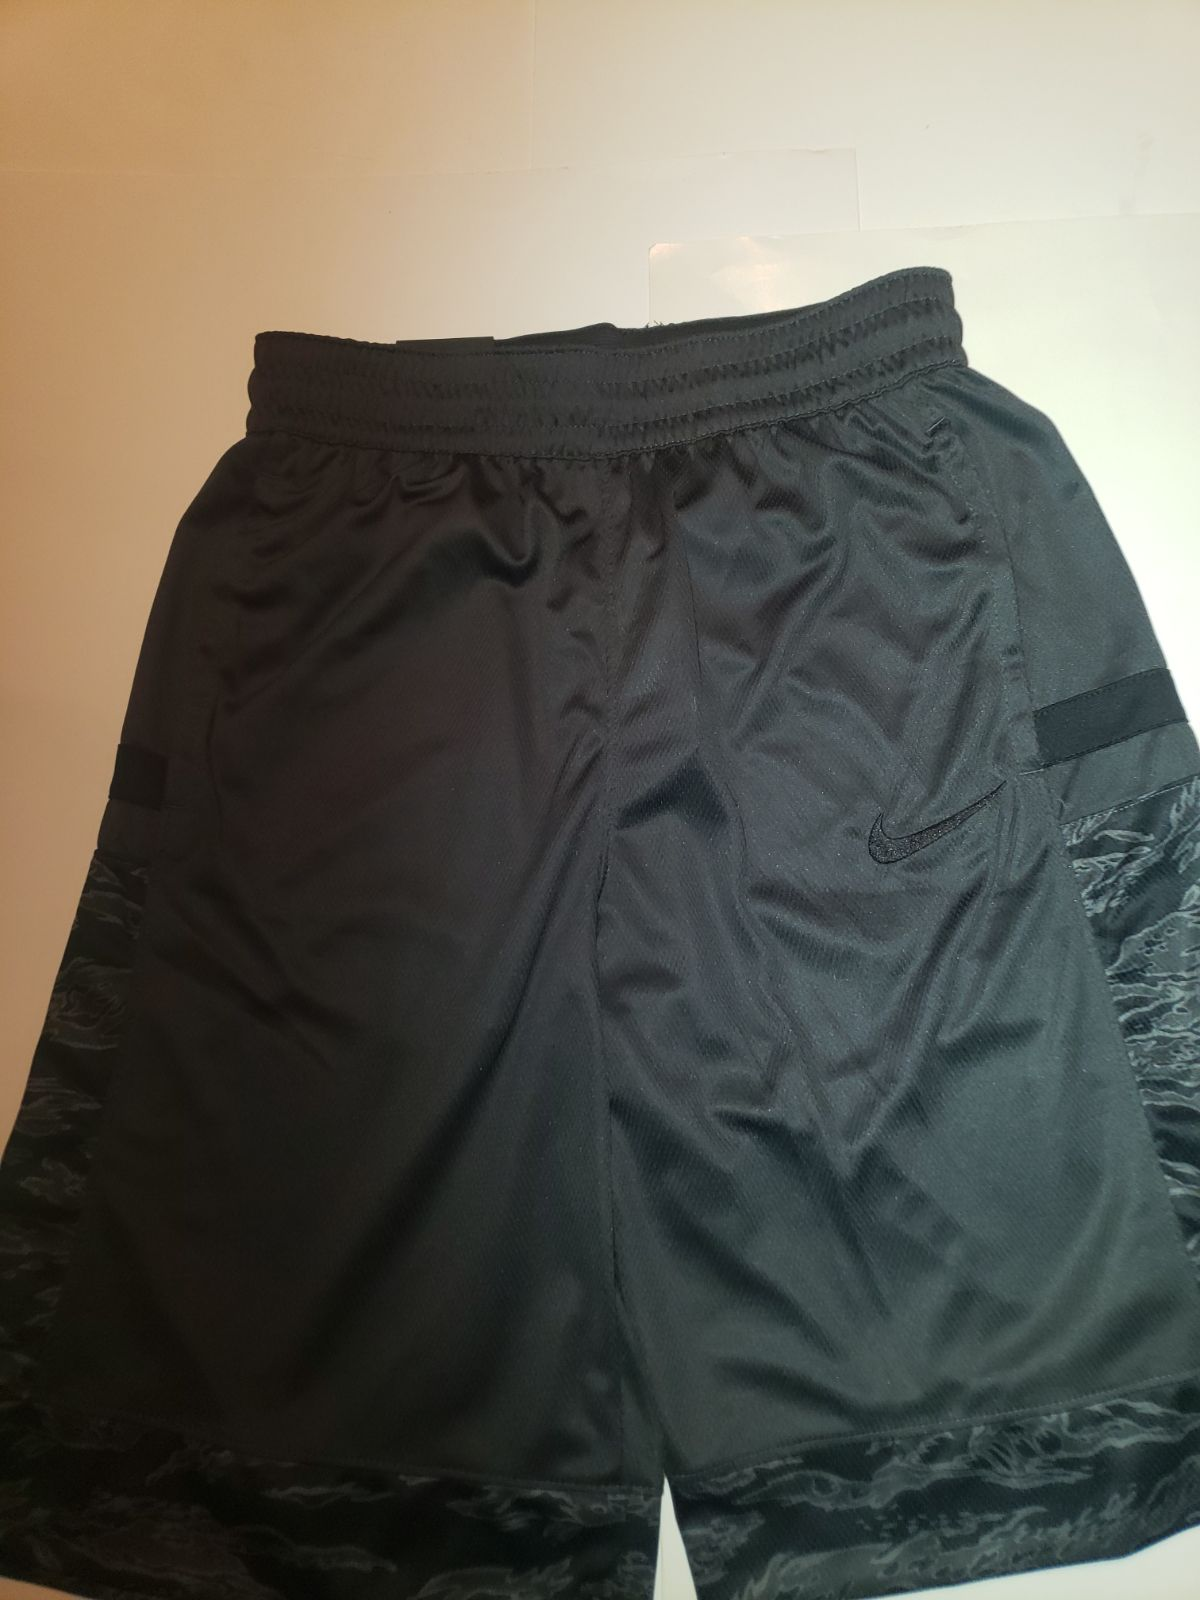 Men's Basketball Shorts Nike Dri-FIT